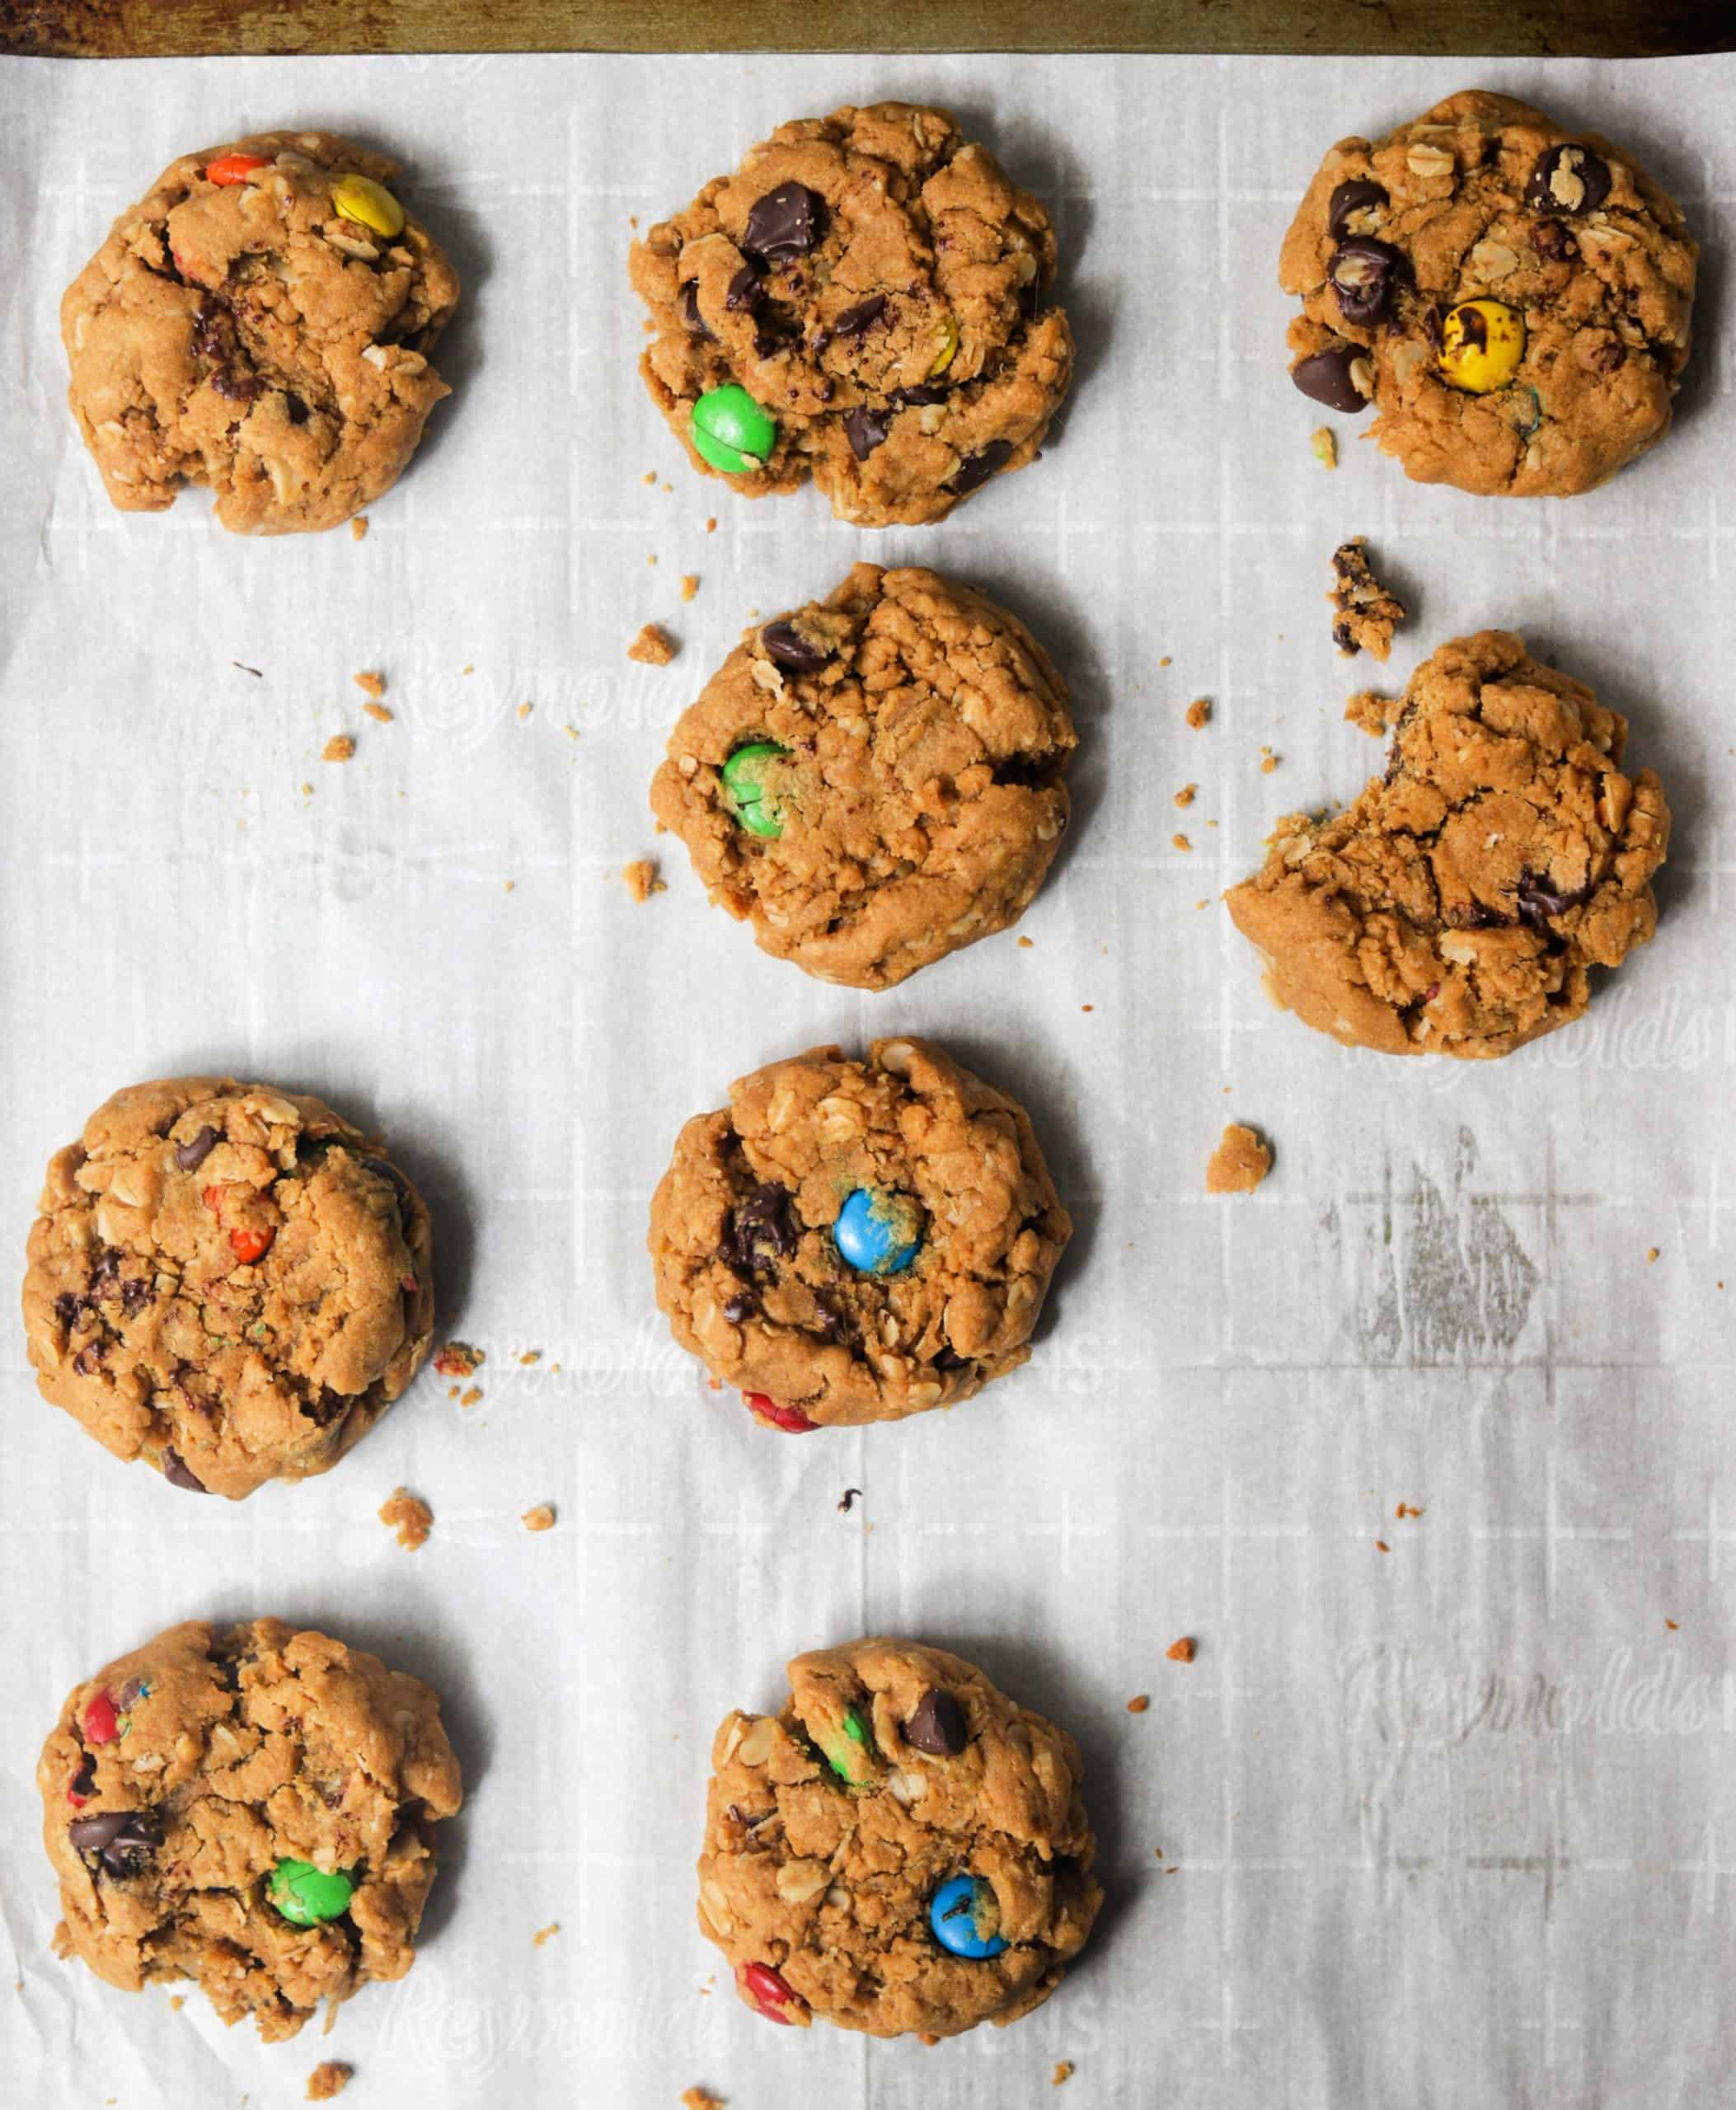 Monster cookies lined up on parchment paper.